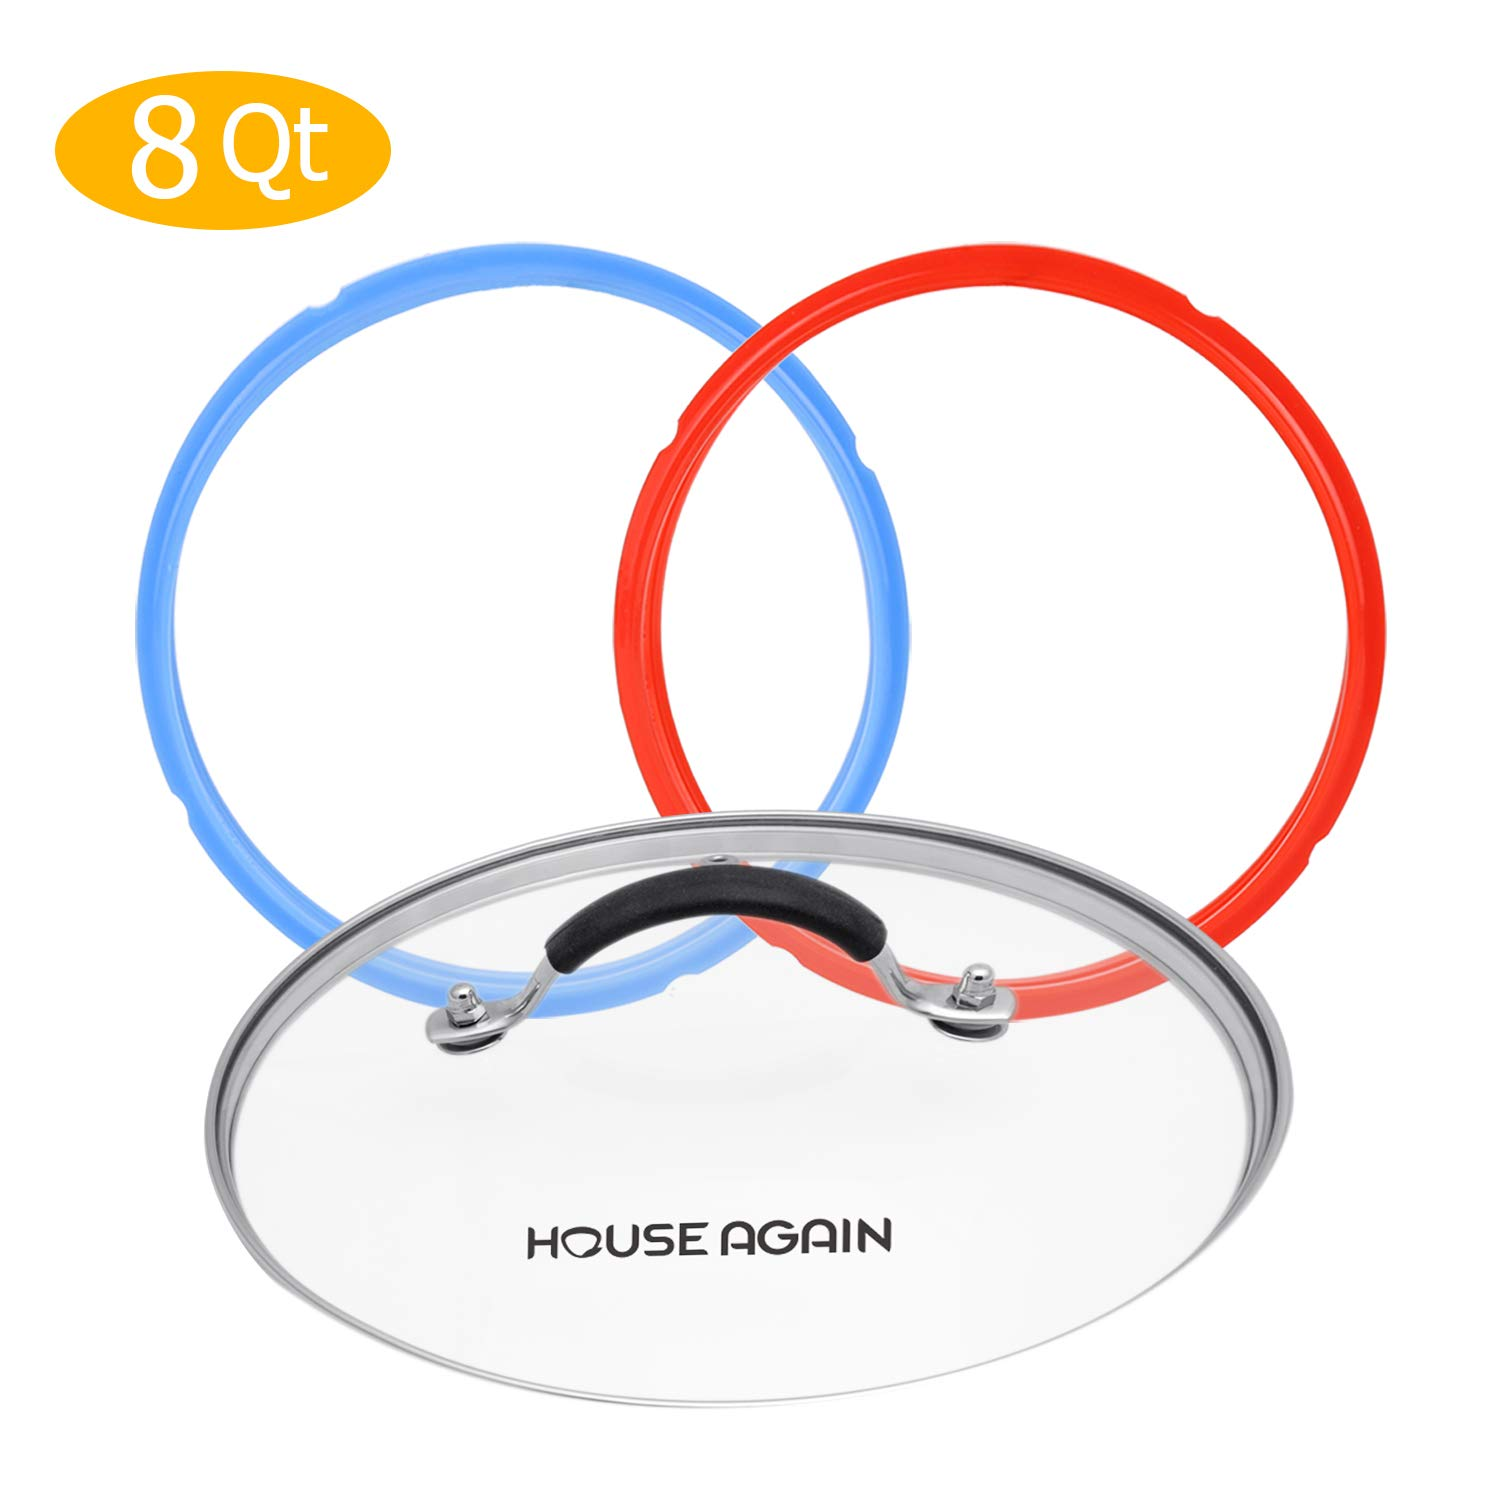 10 Inch Tempered Glass Lid, Transparent Glass Lid with Silicone Coated Handle -Silicone Sealing Ring - Pressure Cooker Accessory with Universal Lid and 2 Pcs Silicone Seal Rings, for 8 qt